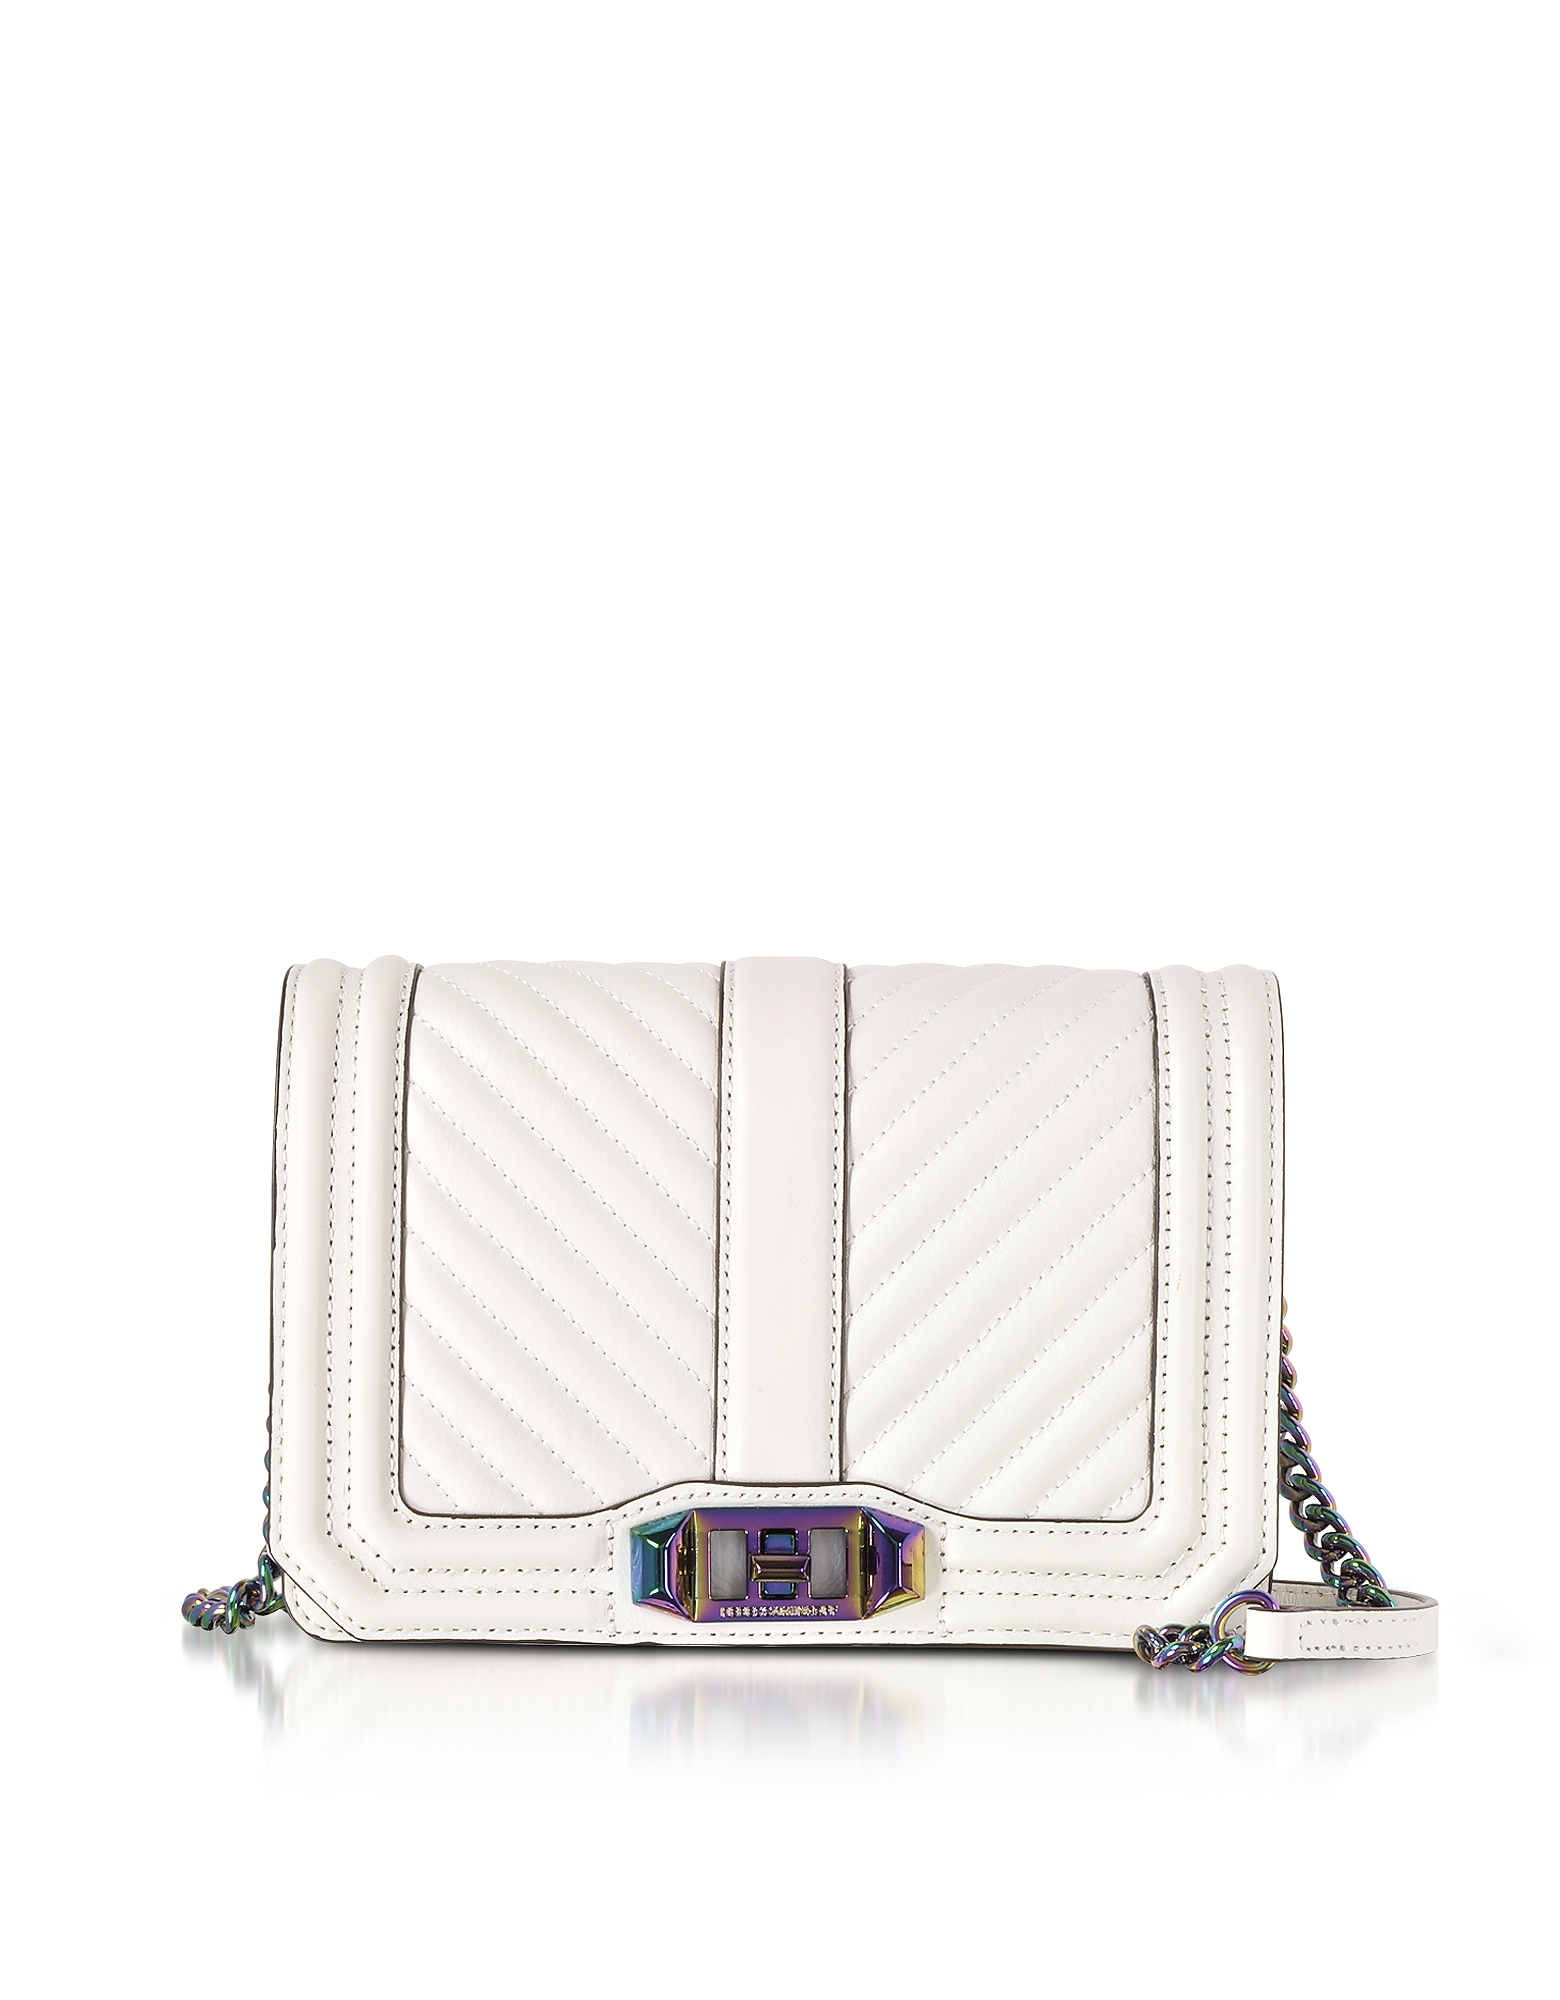 Rebecca Minkoff Handbags, Bianco Chevron Quilted Leather Small Love Crossbody